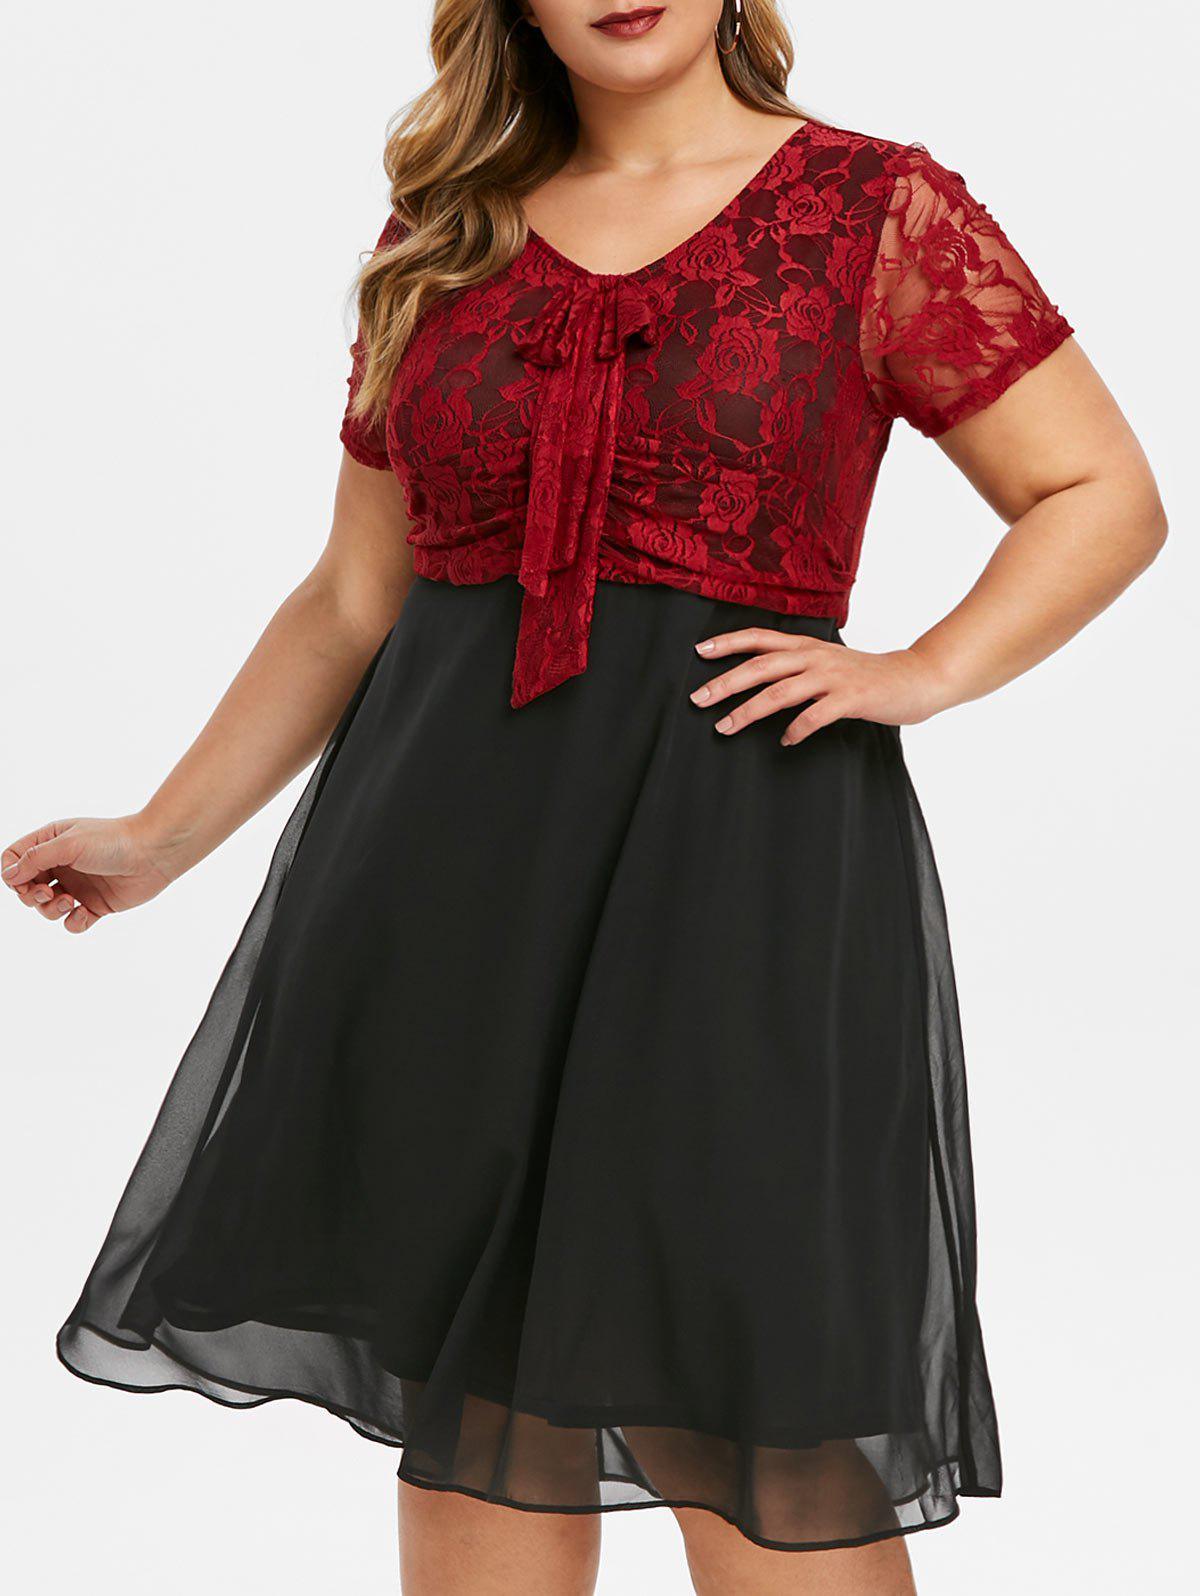 Plus Size Lace Bodice Bowknot Semi Formal Dress